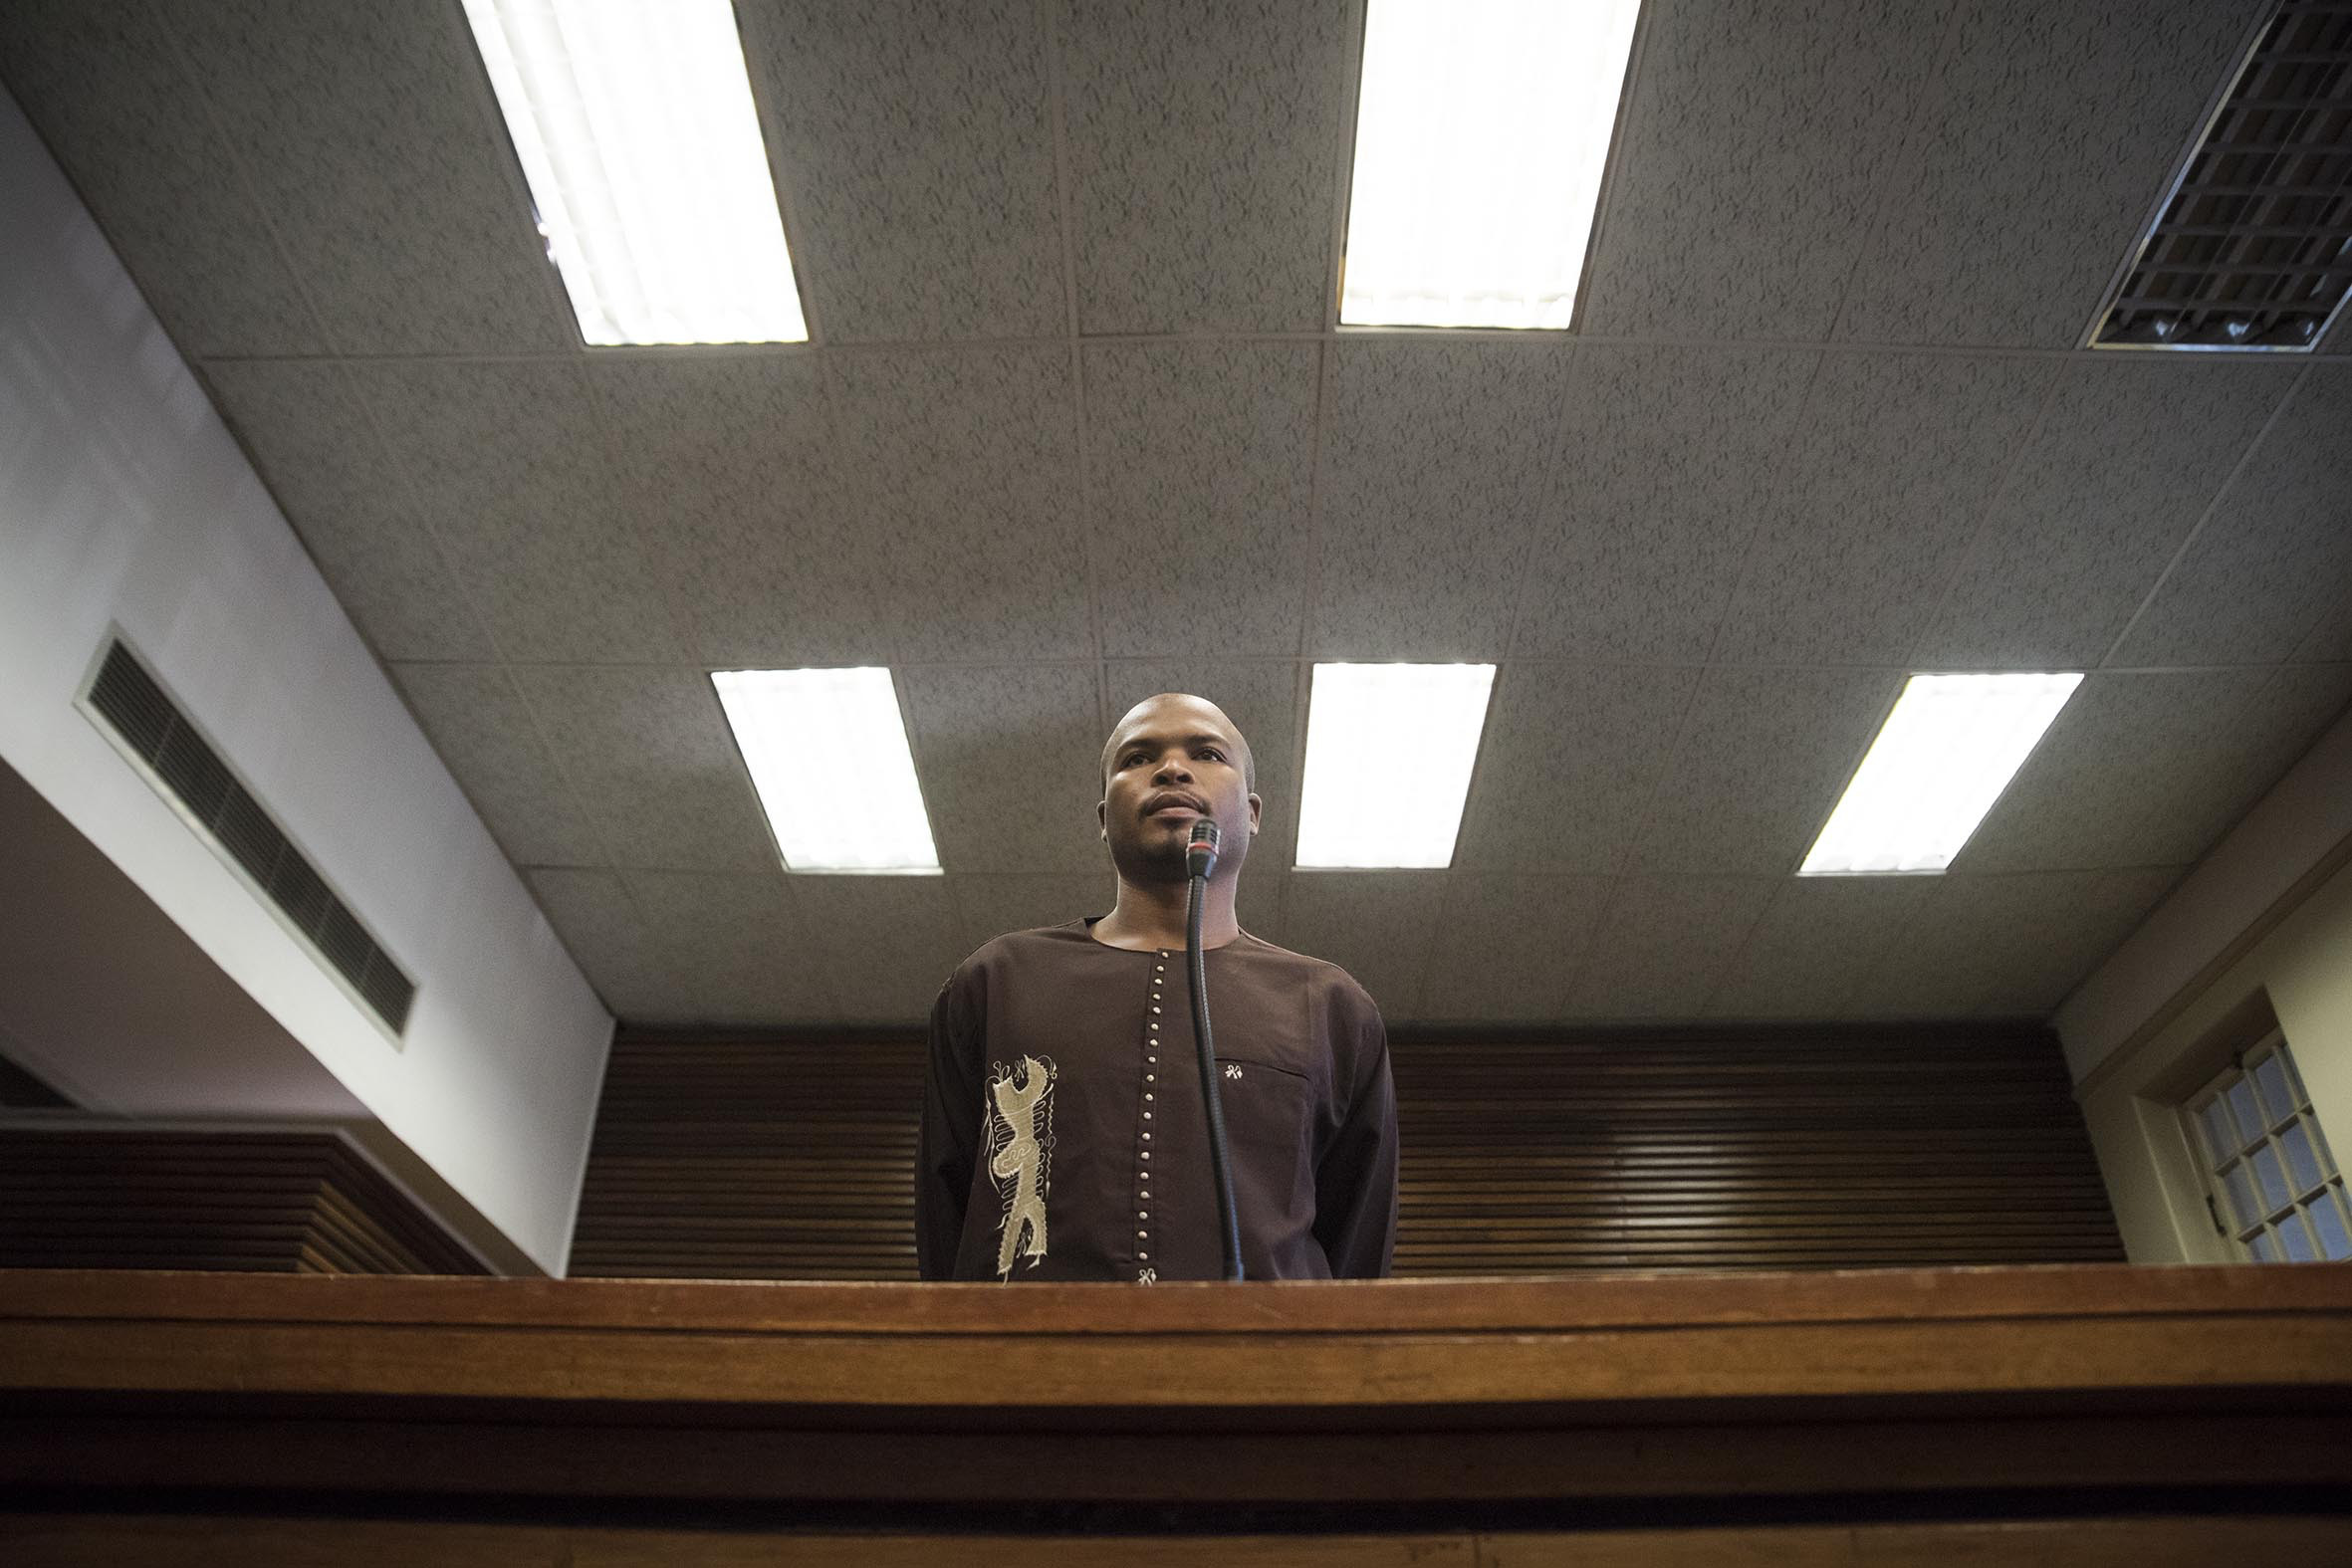 31 August 2018: Siyambusa Mpolase, a resident of the Good Hope shack settlement in Germiston during his fifth appearance at the Germiston magistrates' court on a charge of public violence